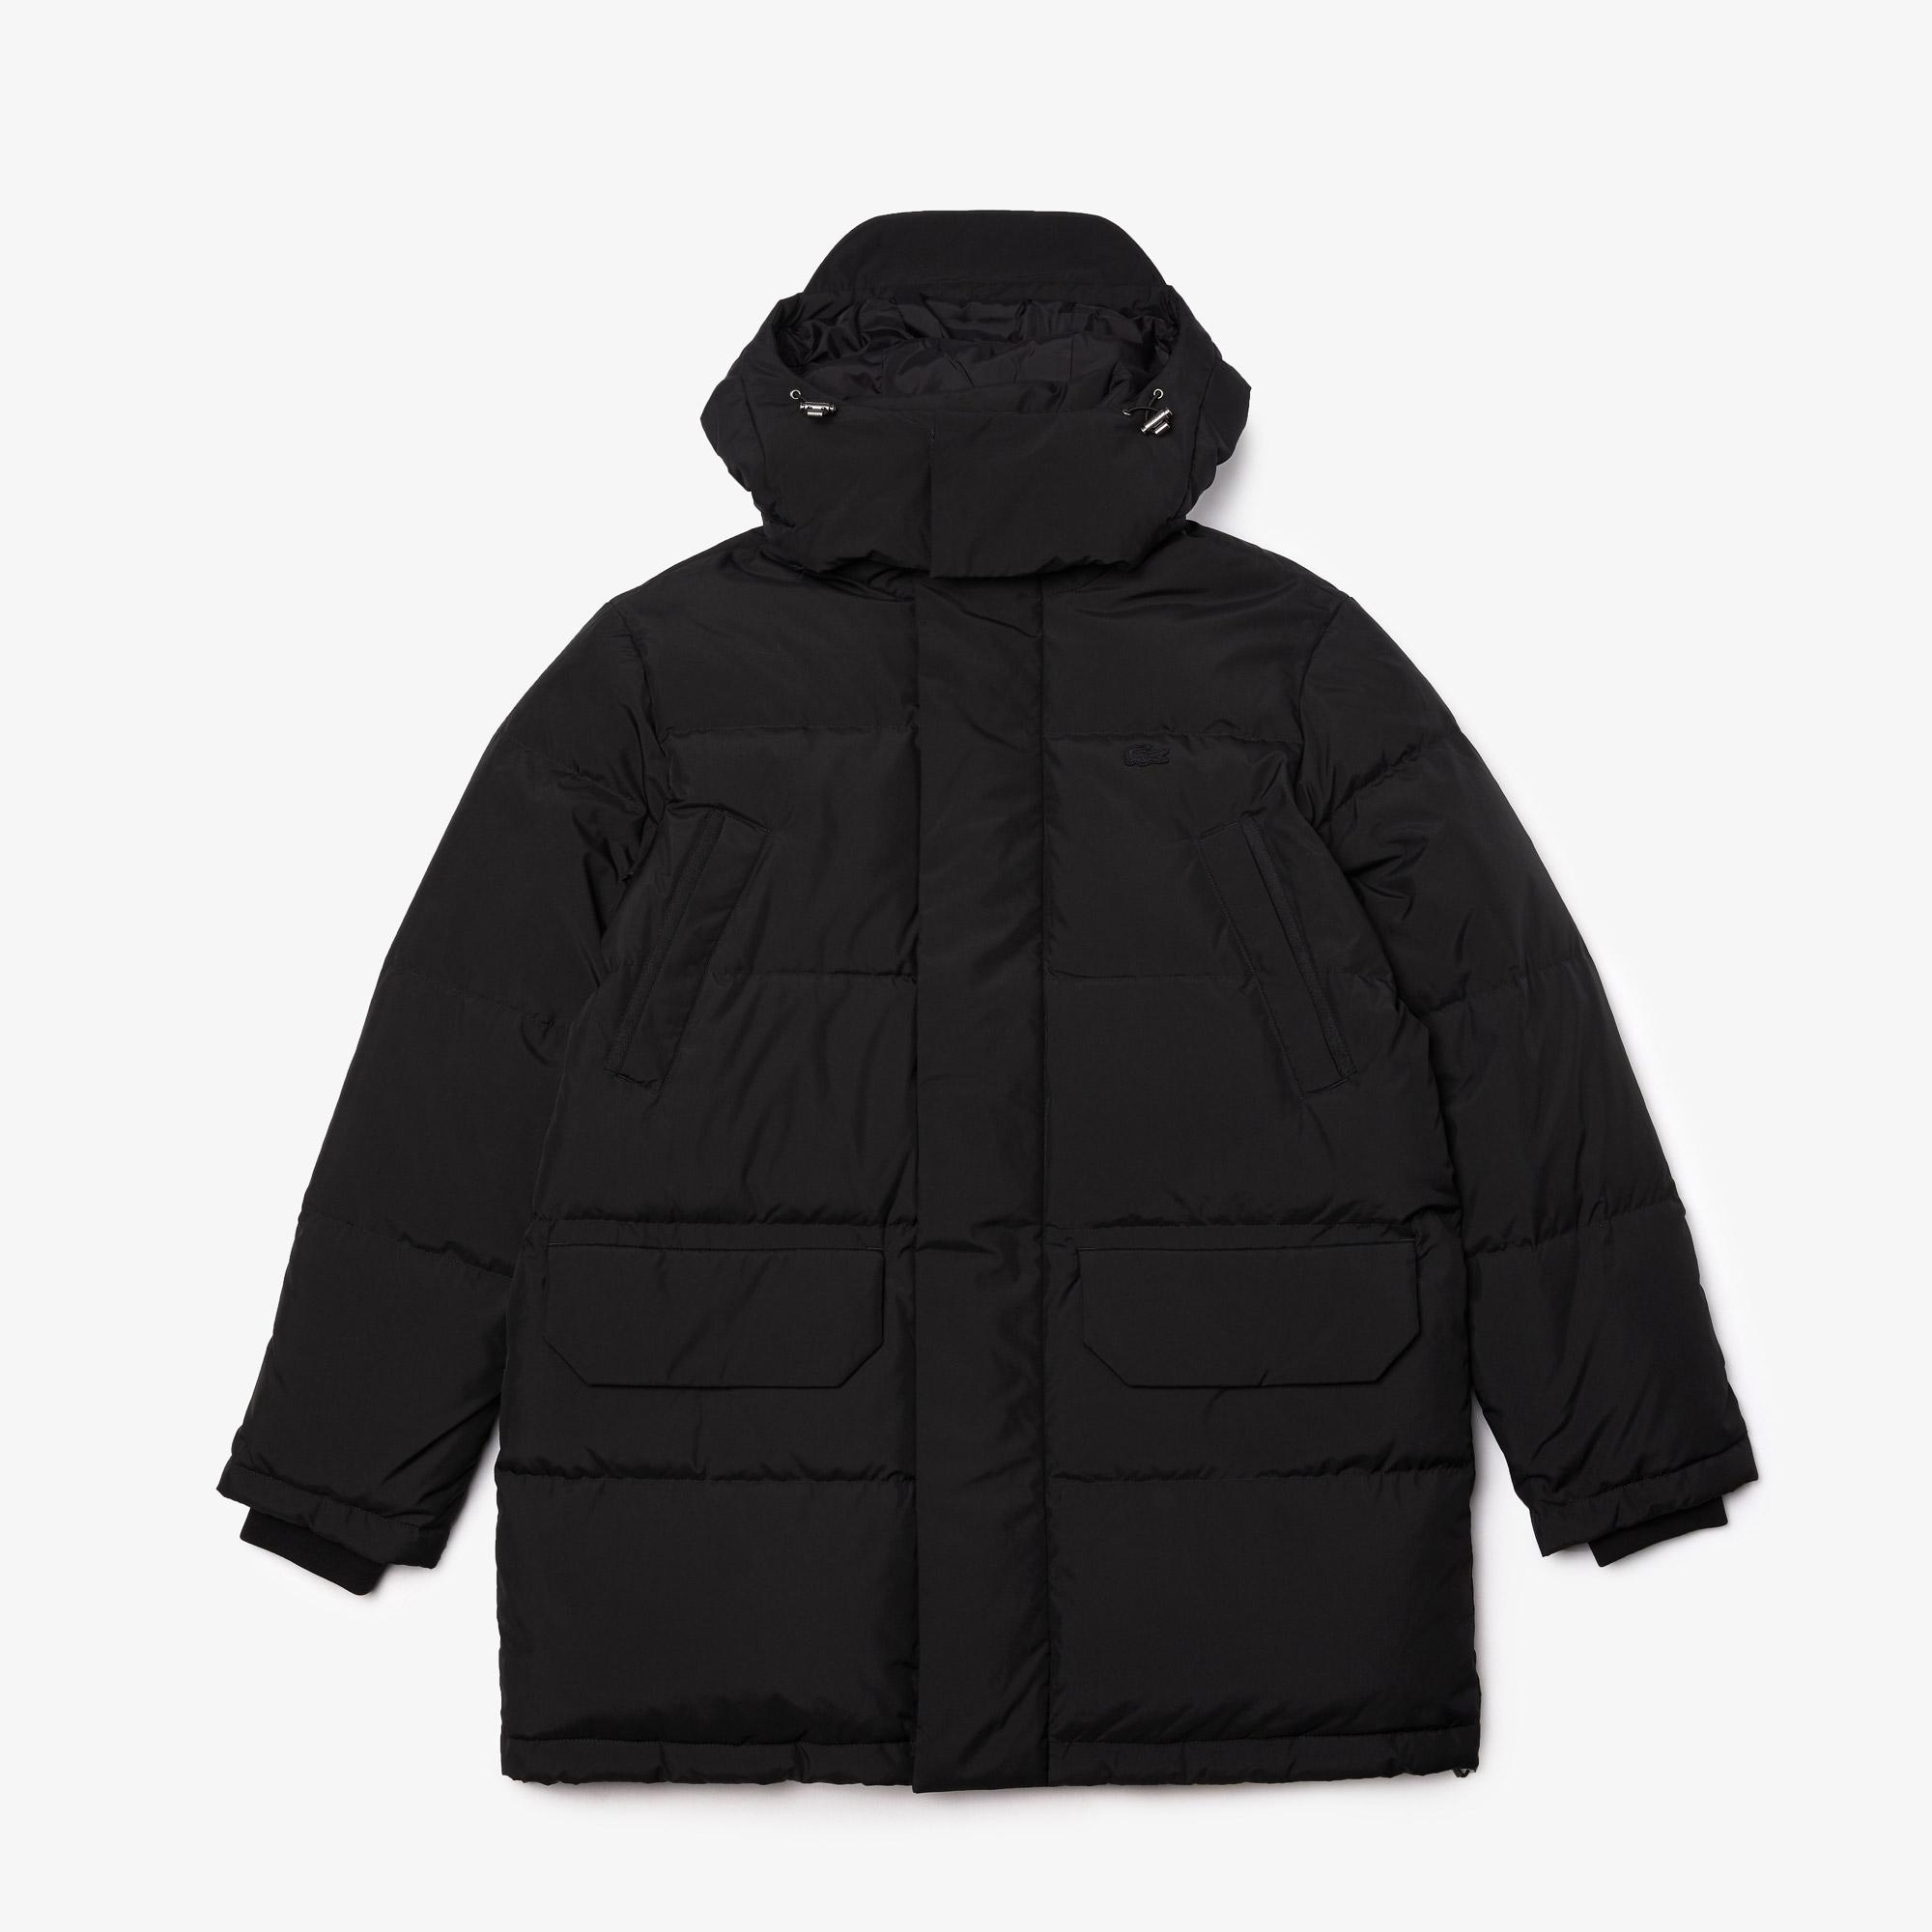 Lacoste Men's Detachable Hood Long Puffer Coat